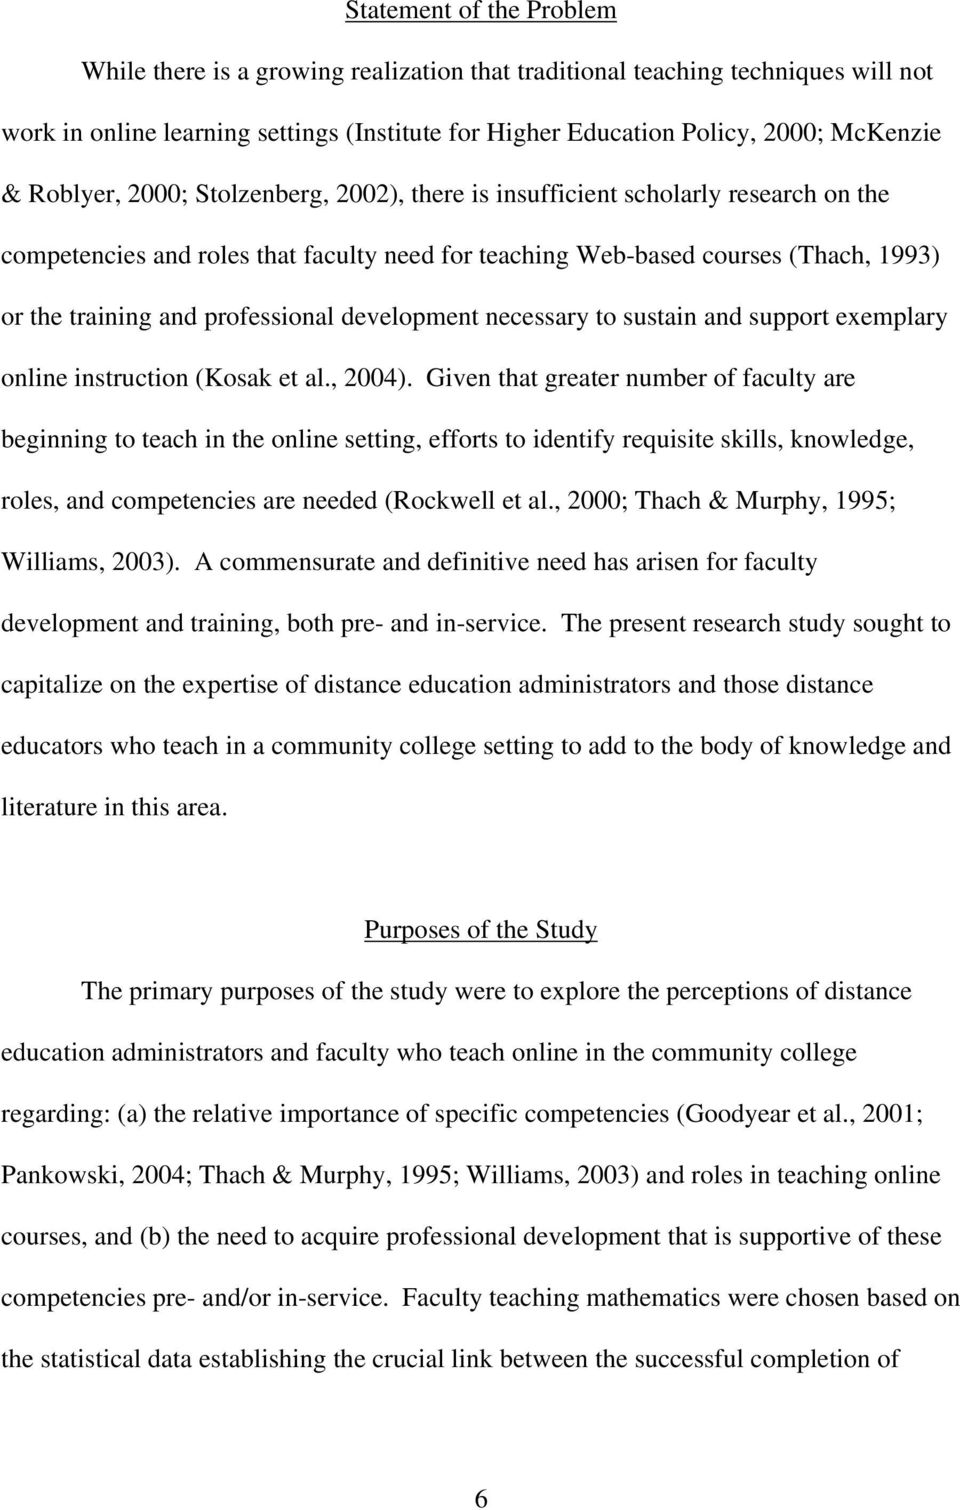 professional development necessary to sustain and support exemplary online instruction (Kosak et al., 2004).